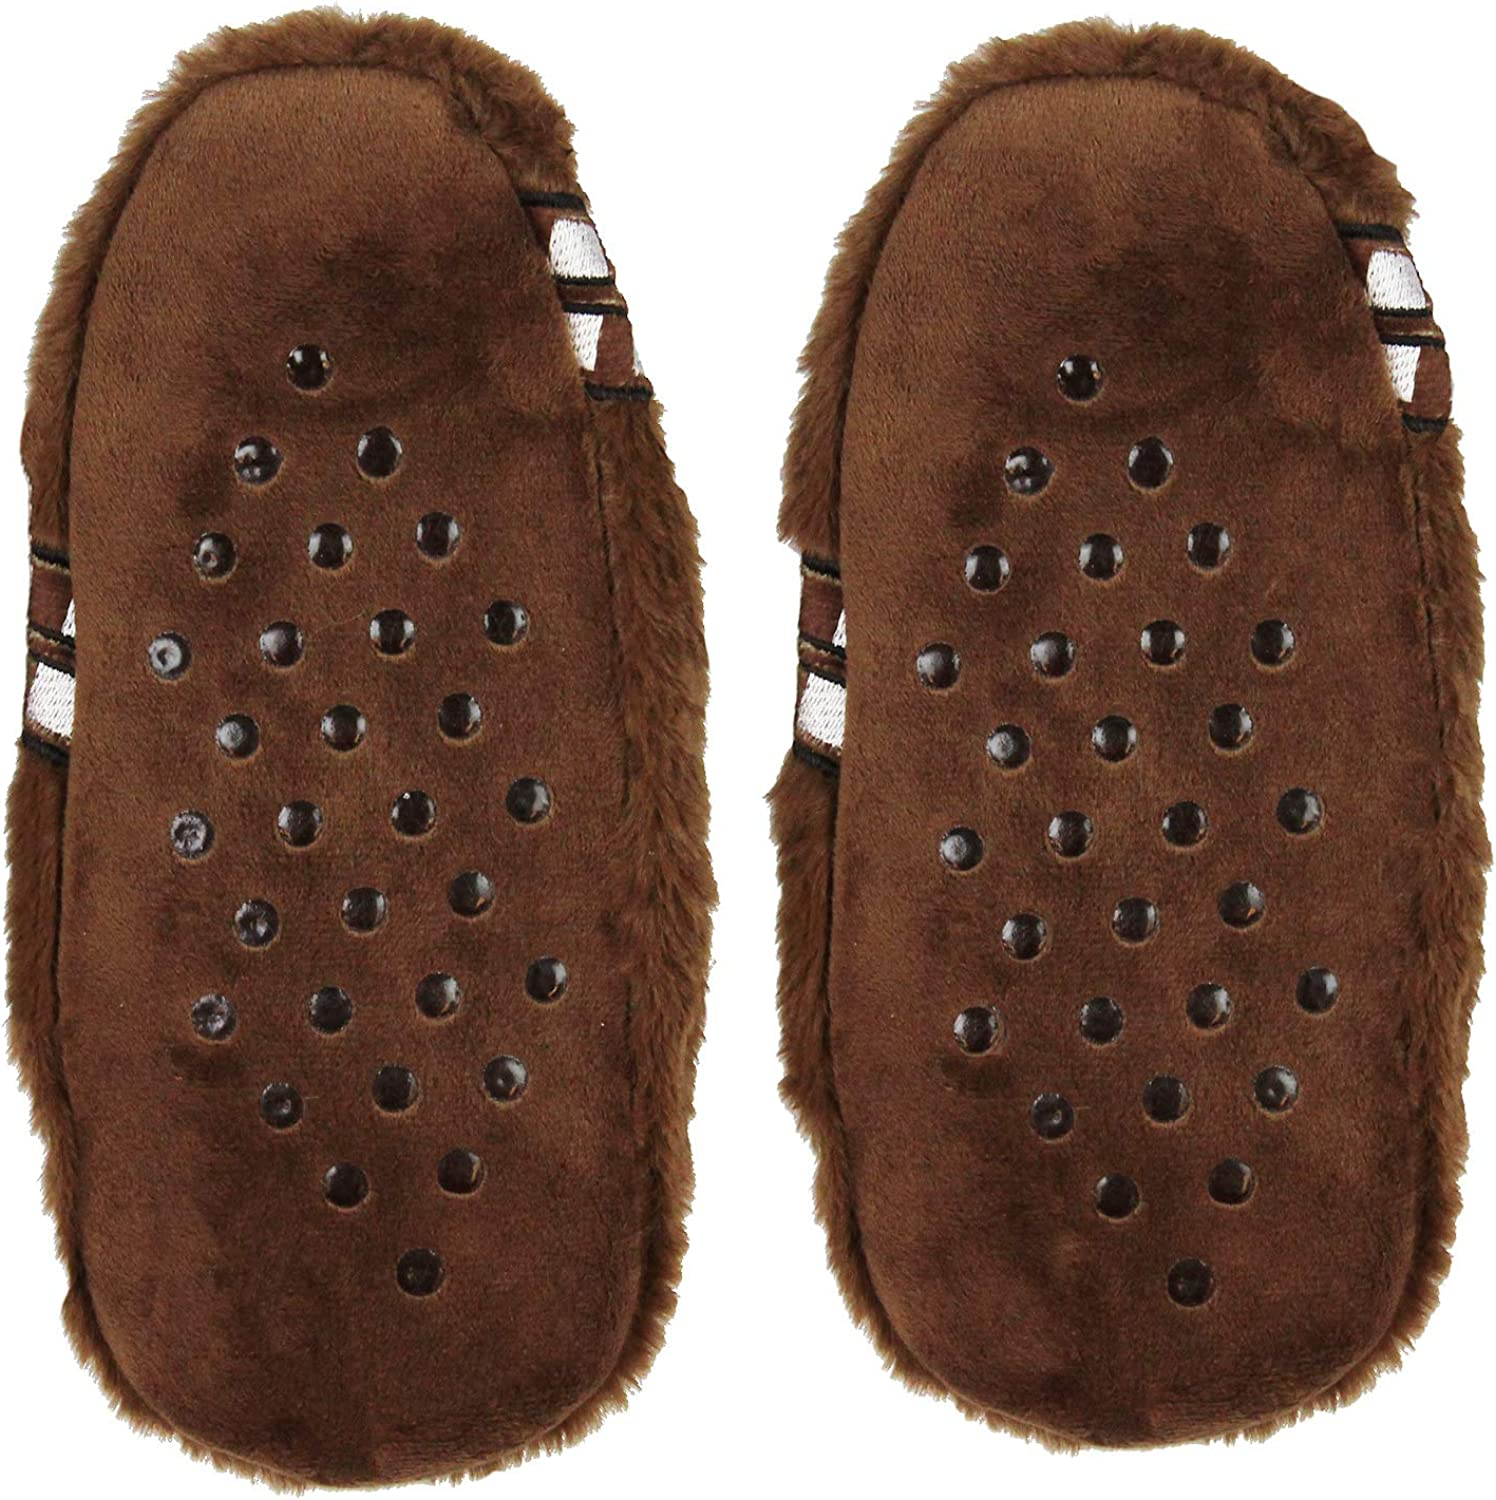 Star Wars Chewbacca Chewie Slippers Character Slipper Socks with No-Slip Sole For Women Men